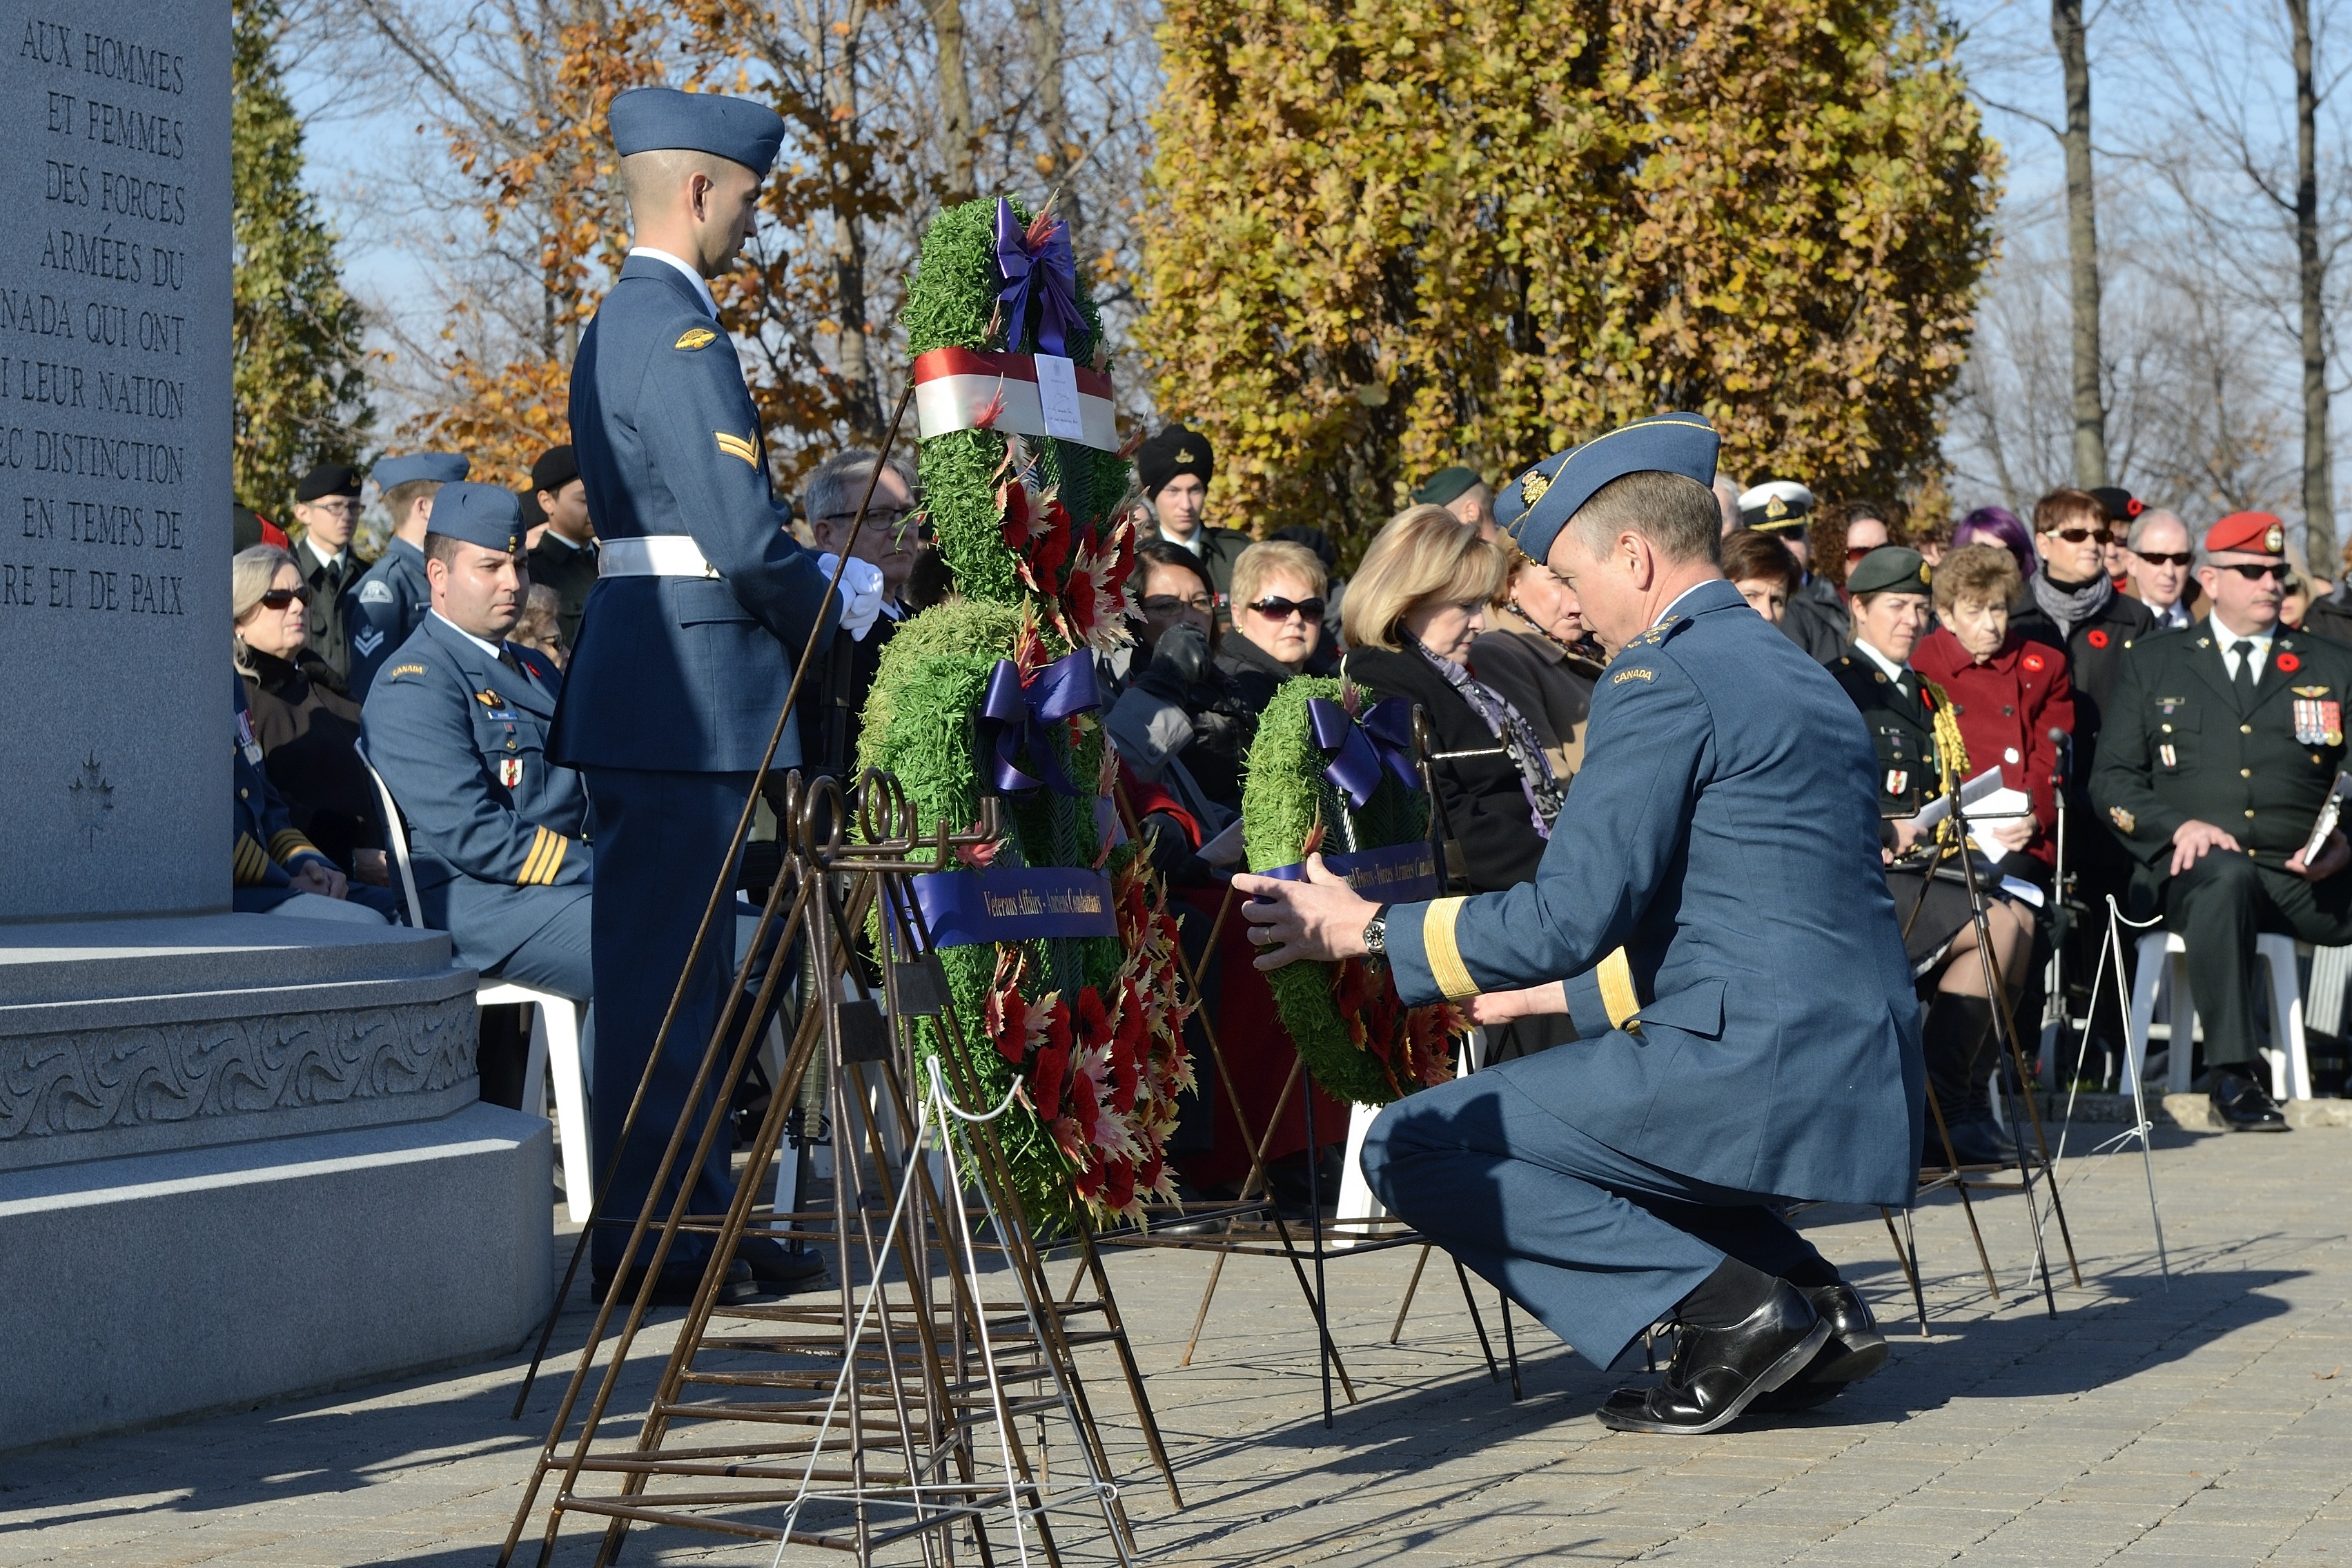 Lieutenant-General David Millar places a wreath during the Remembrance Day ceremony at Beechwood Military Cemetery in Ottawa, Ontario, on November 11, 2014. PHOTO: Corporal Lisa Fenton